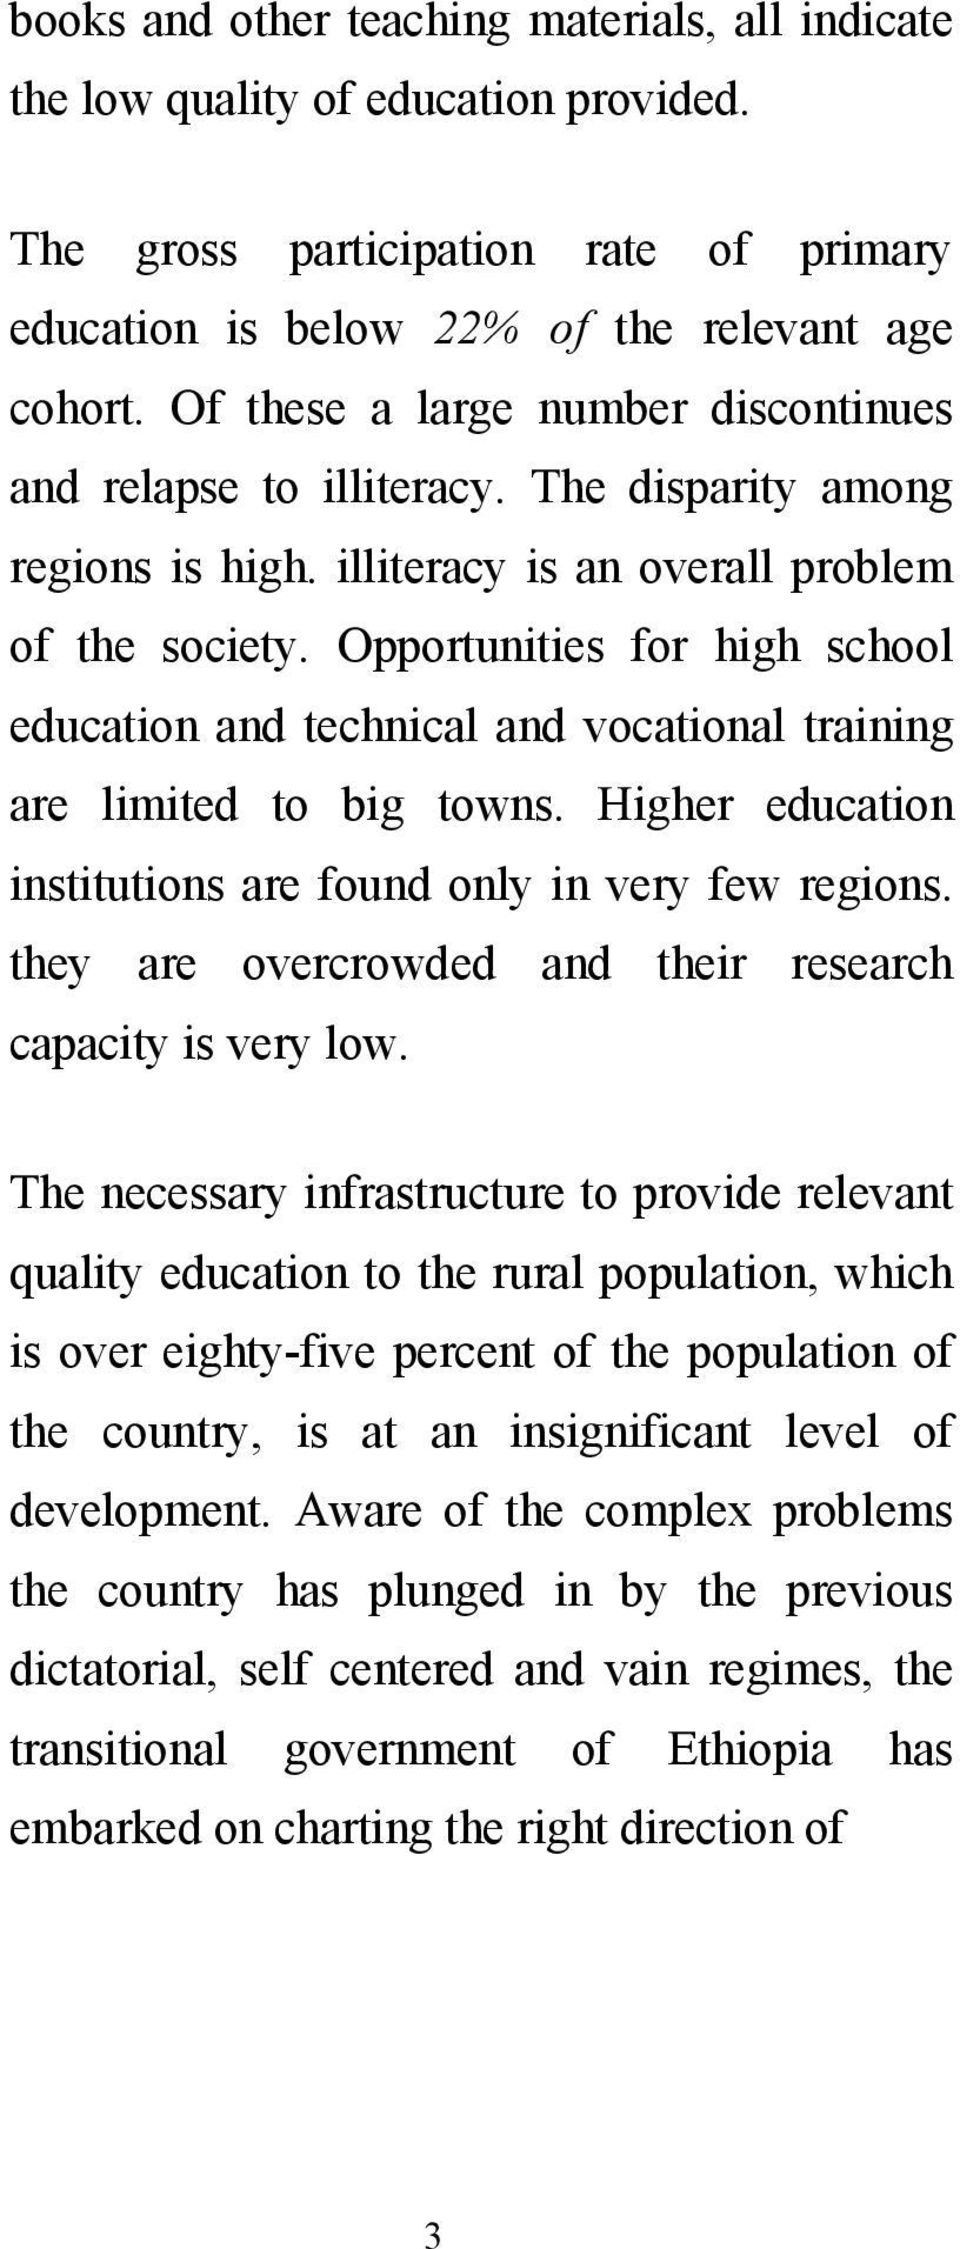 Opportunities for high school education and technical and vocational training are limited to big towns. Higher education institutions are found only in very few regions.